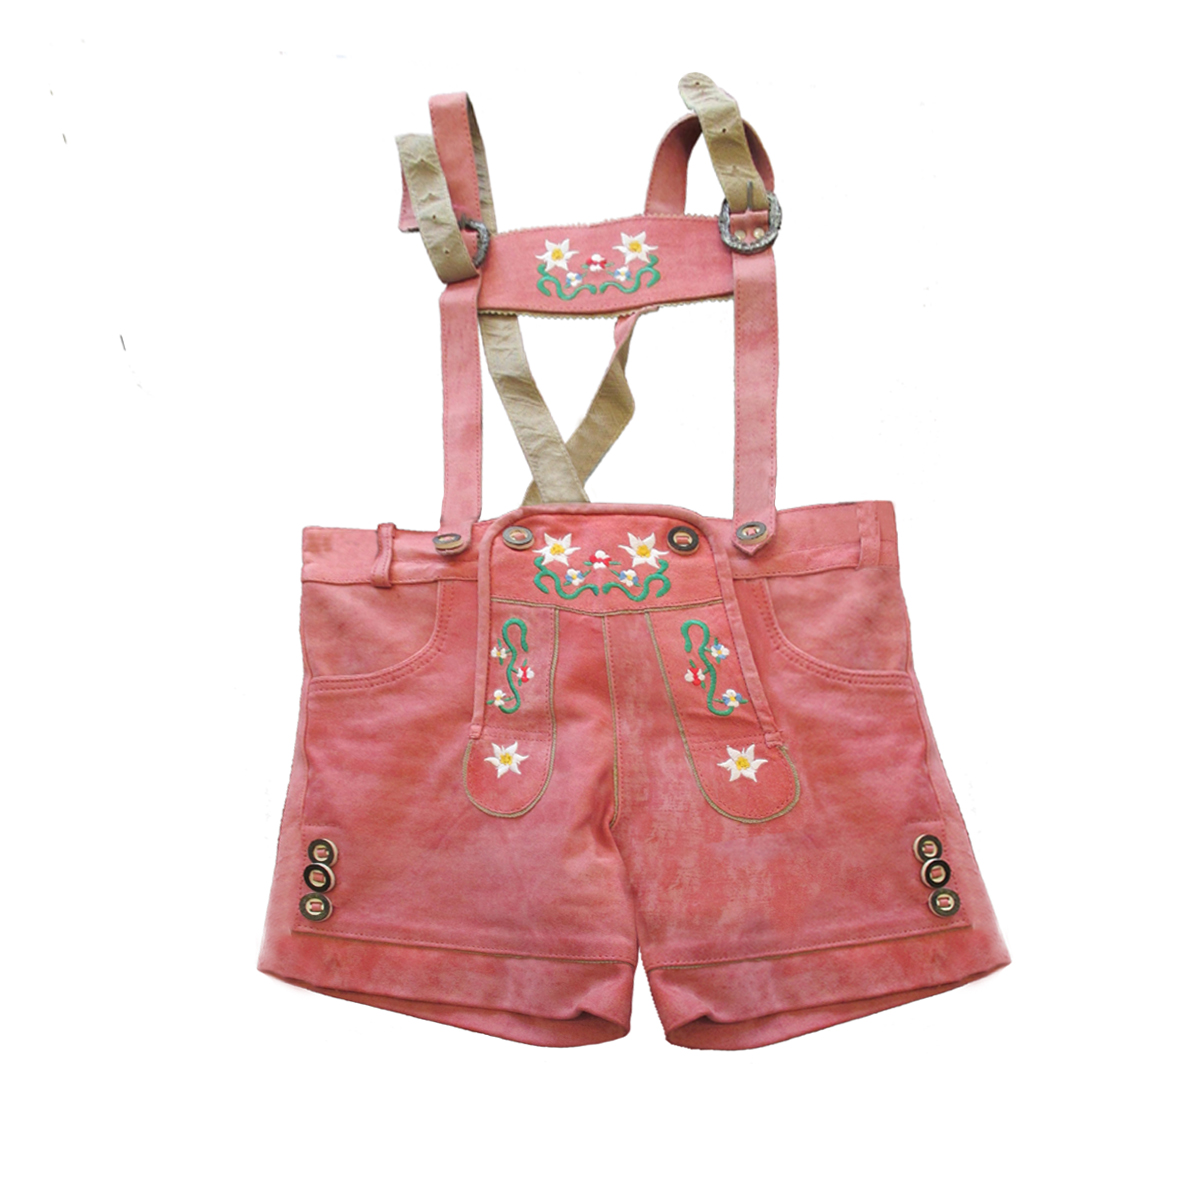 LADIES PINK LEDERHOSEN